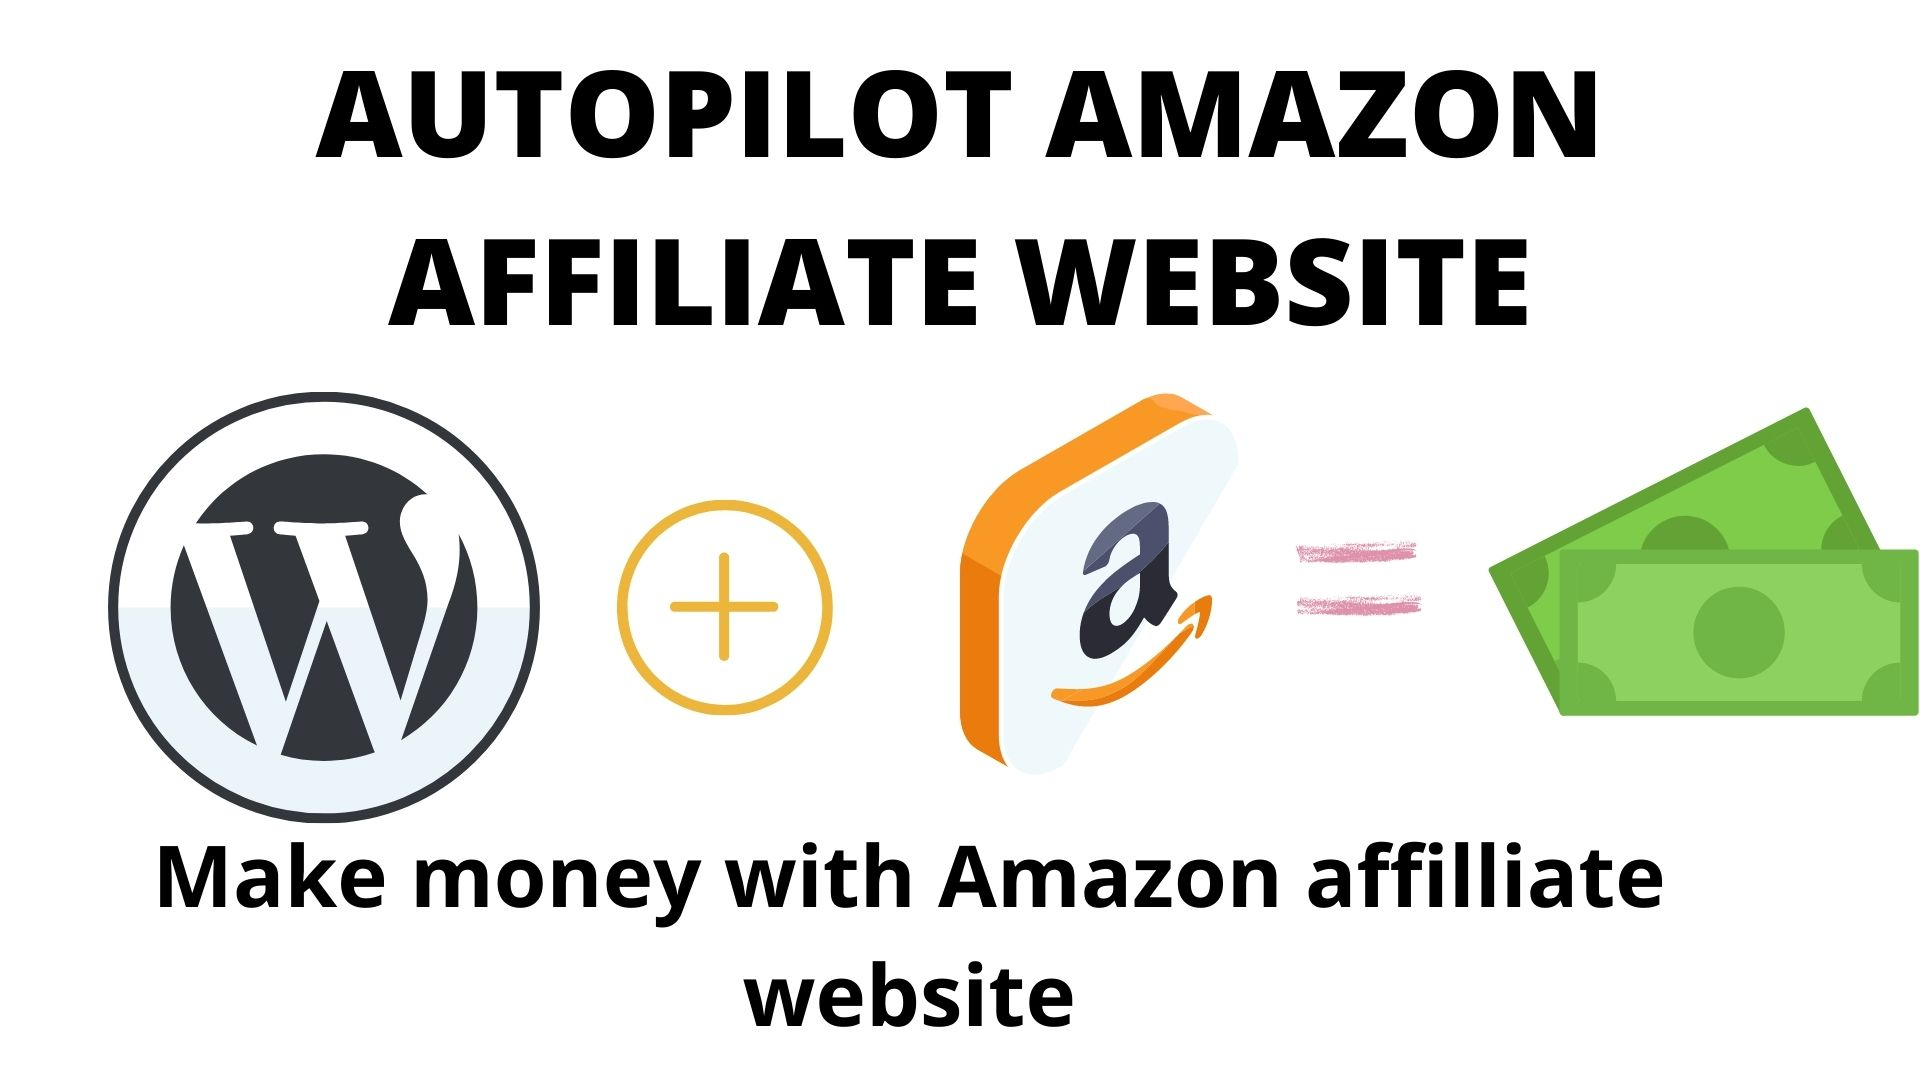 I will create autopilot amazon affiliate website for you